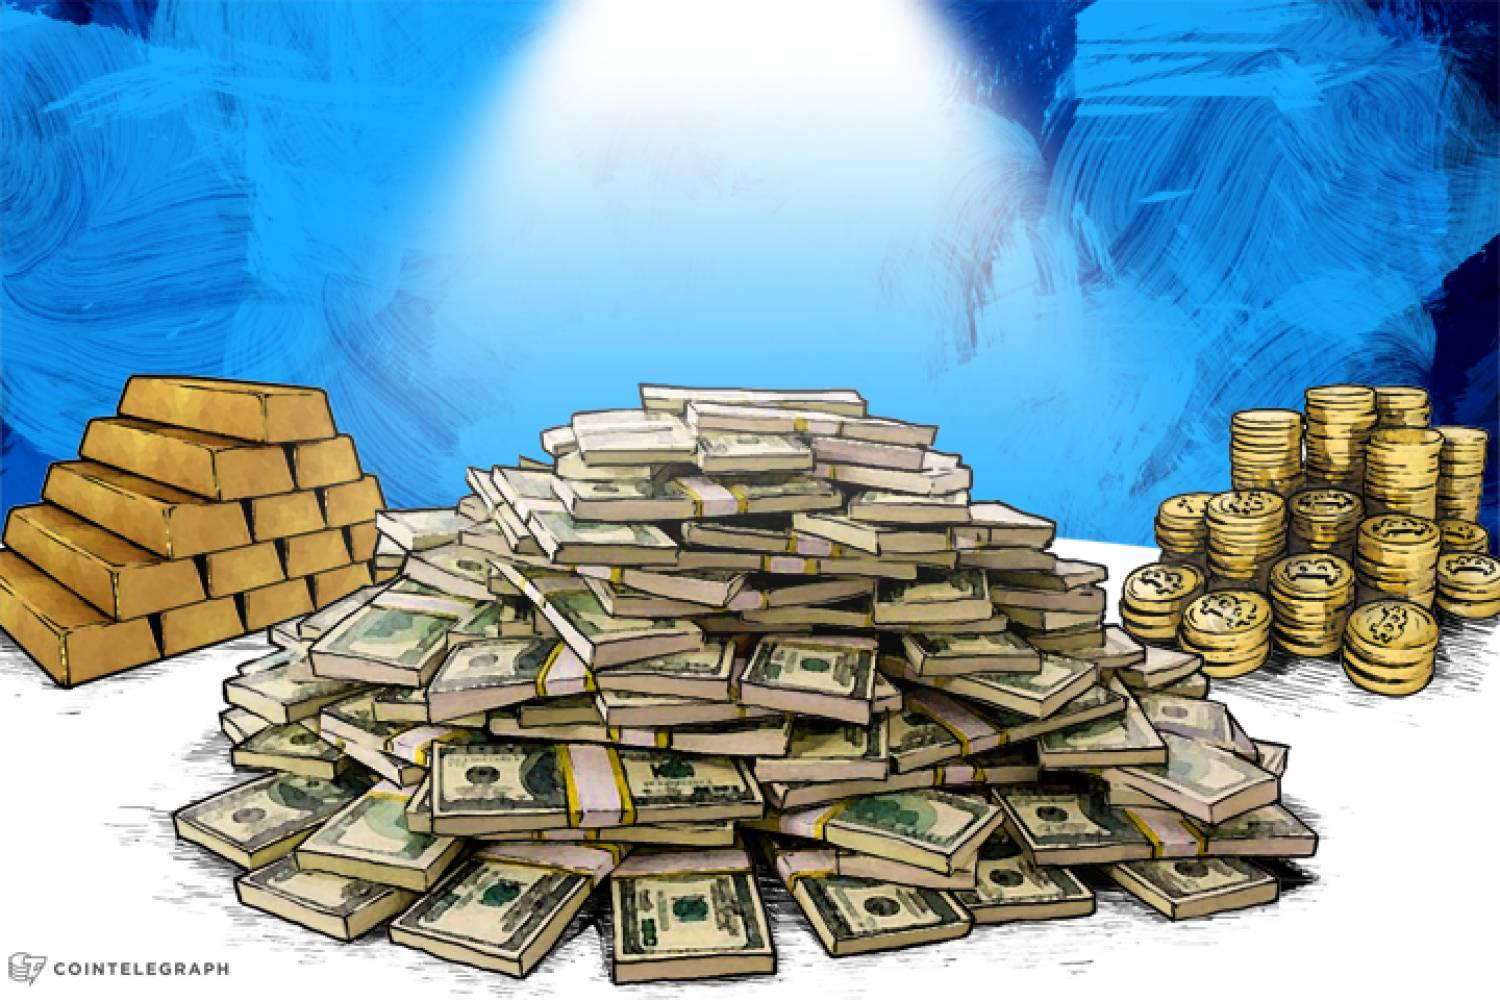 Mountain of money, mountain of gold, mountain of bitcoins